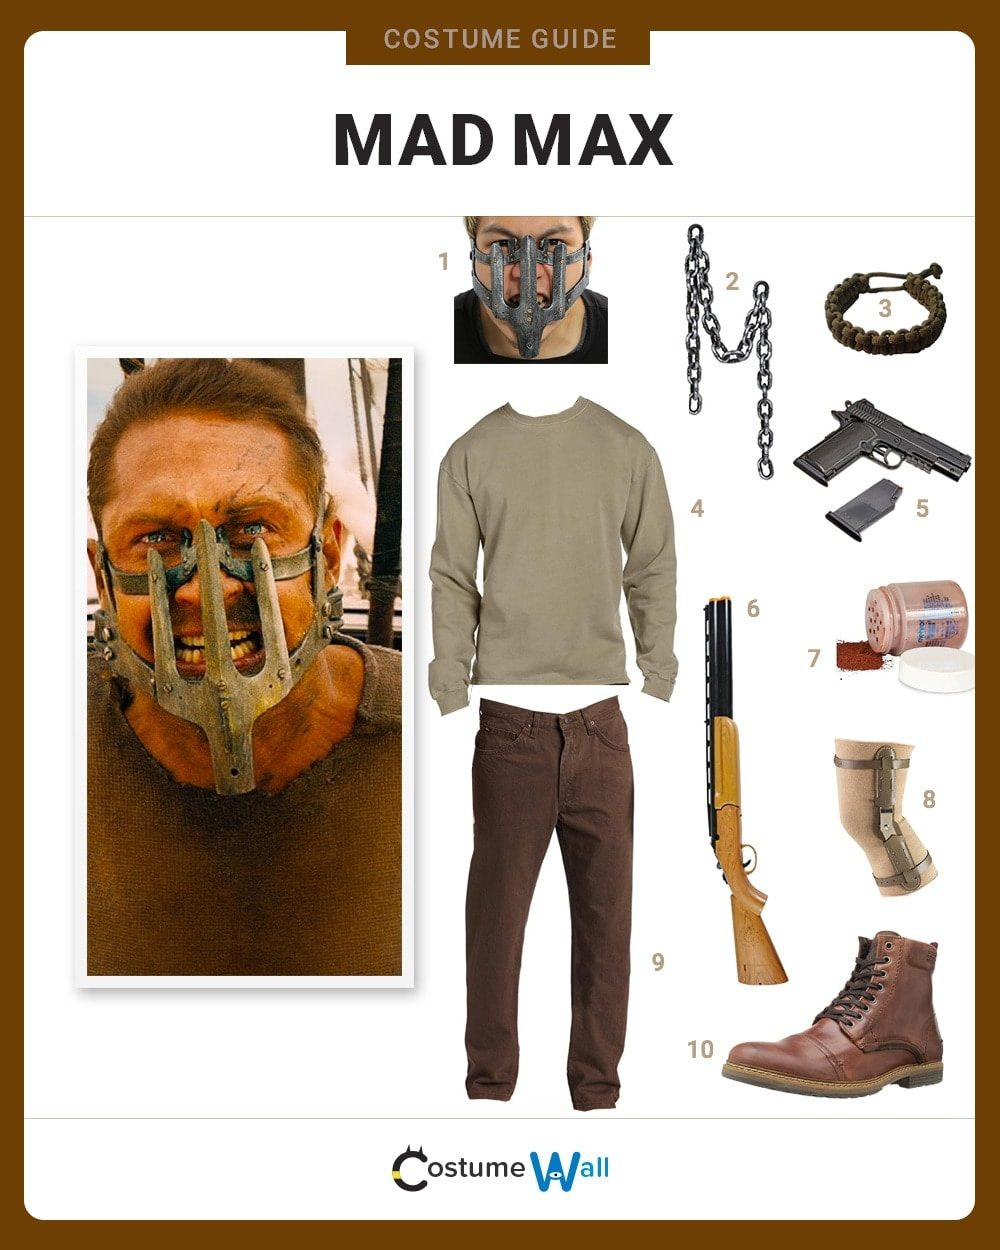 Extrem Dress Like Mad Max Costume | Halloween and Cosplay Guides OI83